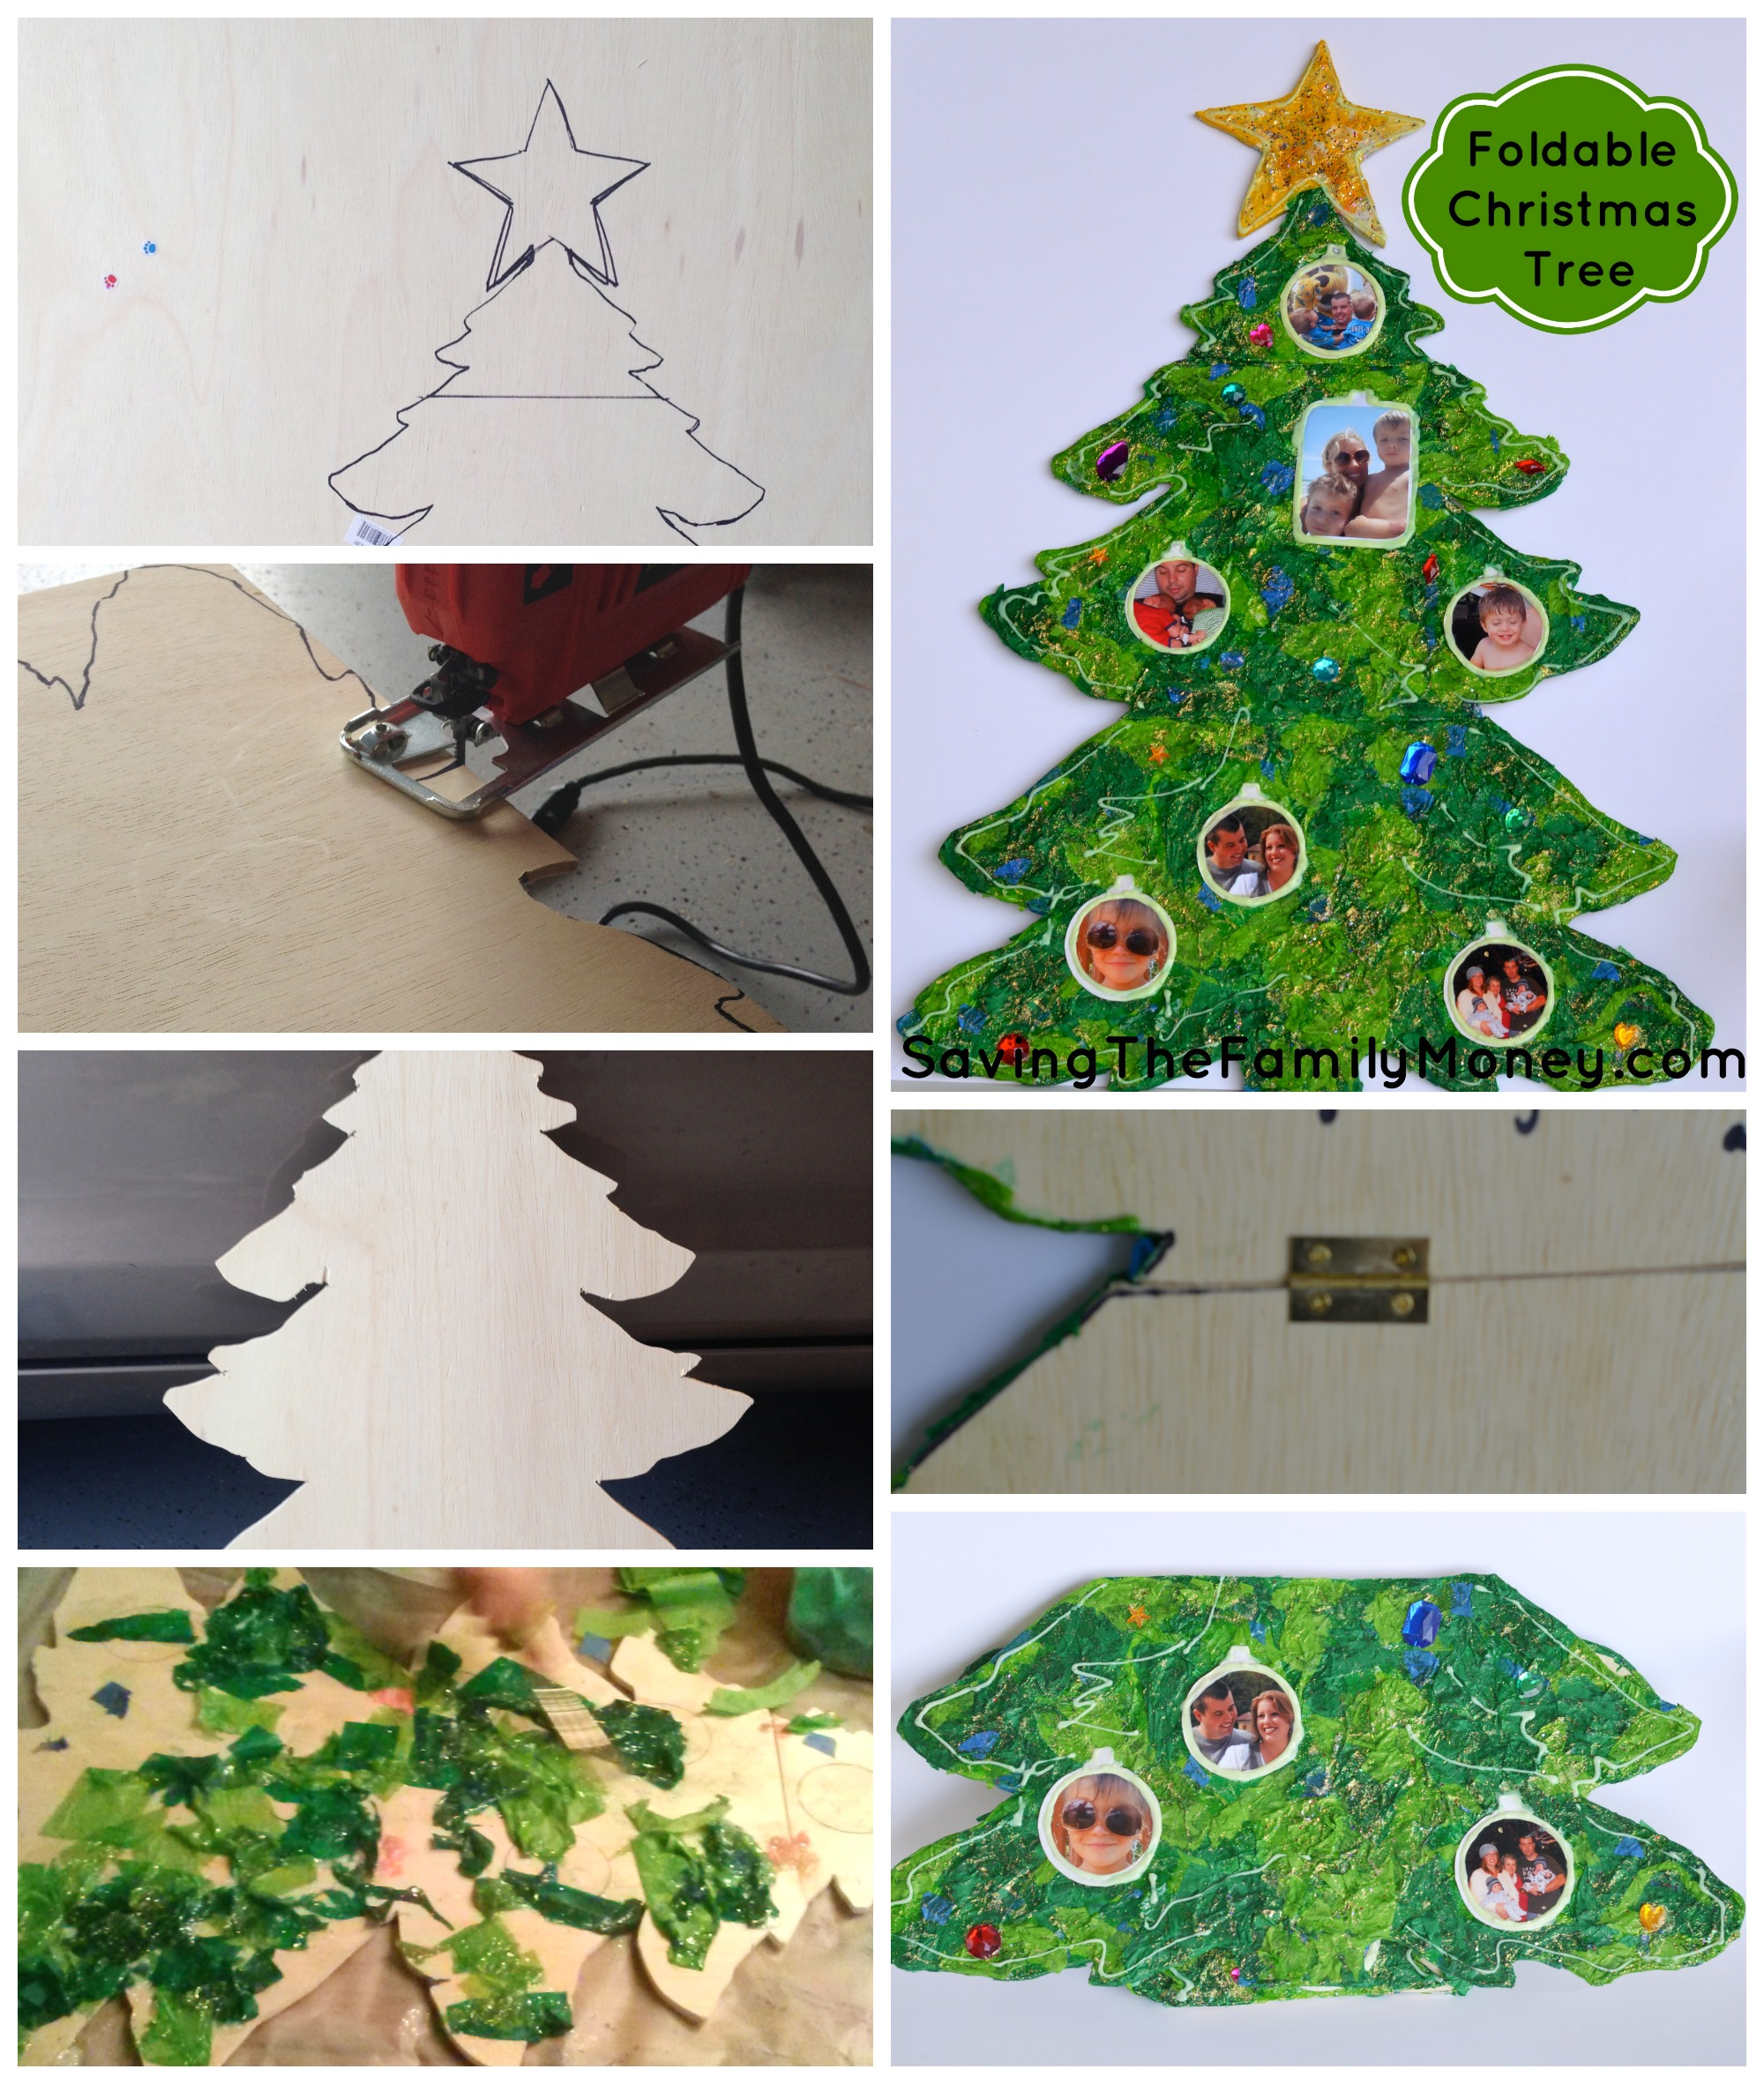 Foldable Christmas Tree Military